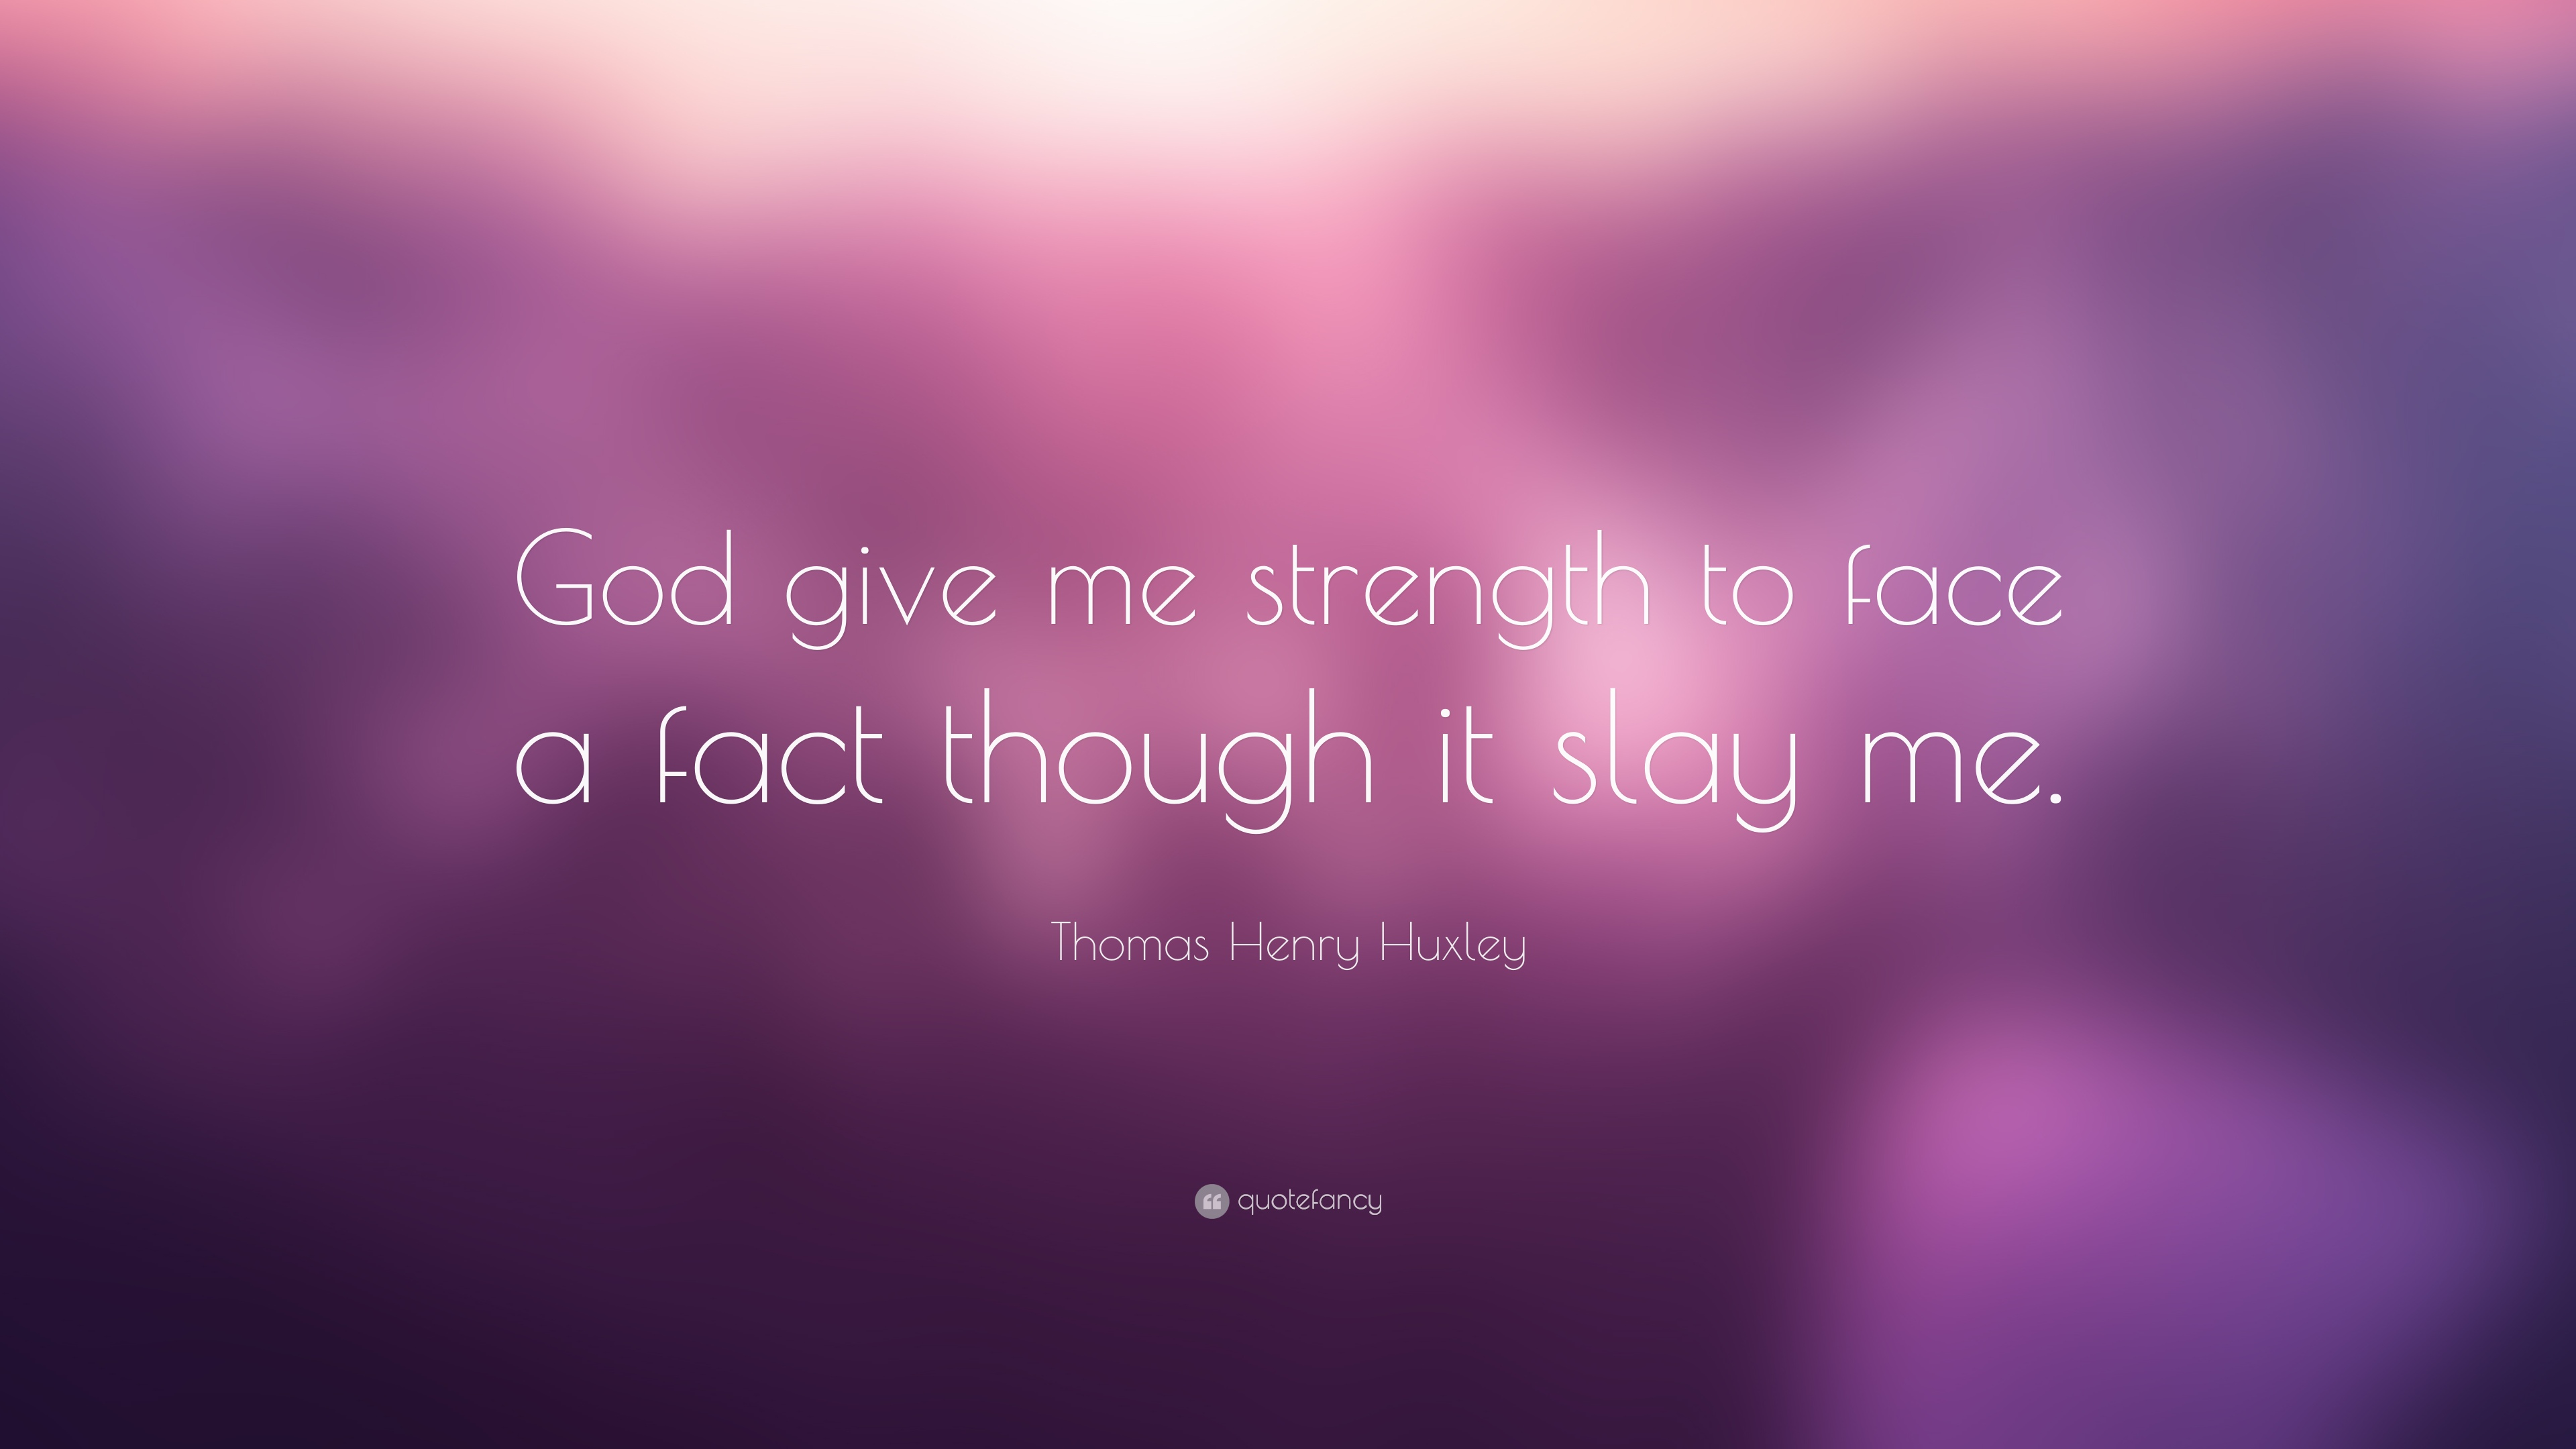 Thomas Henry Huxley Quote God Give Me Strength To Face A Fact